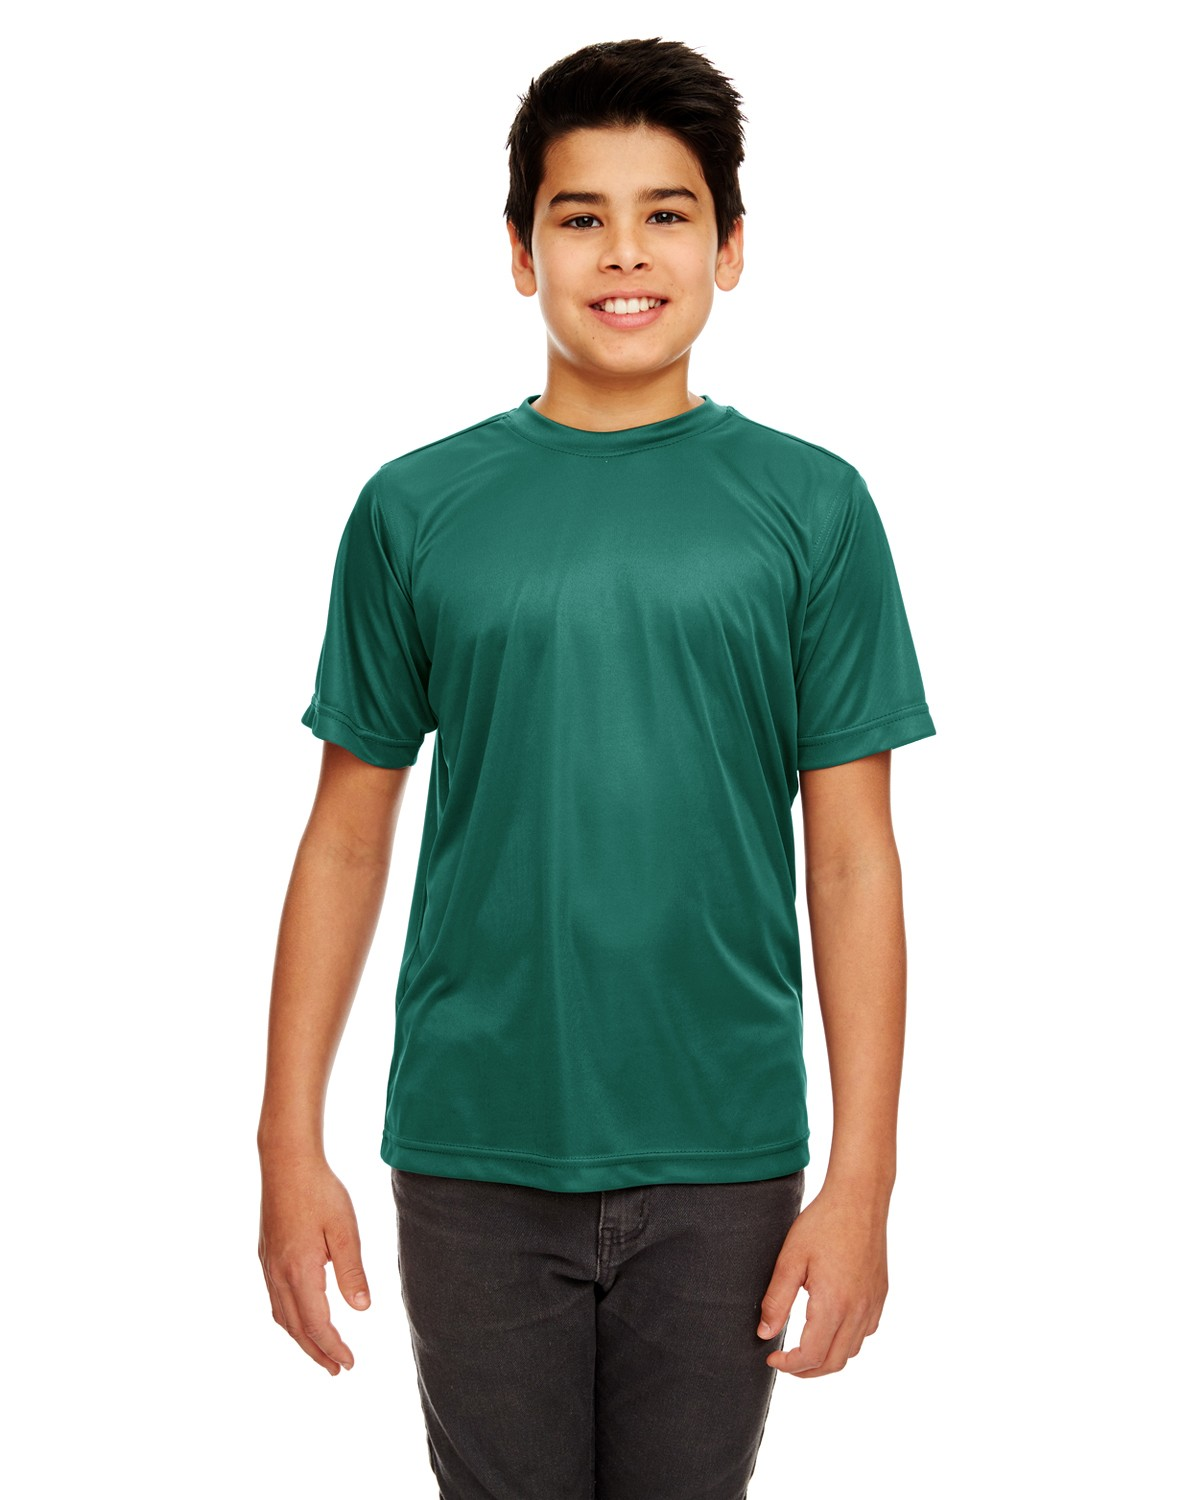 8420Y UltraClub FOREST GREEN